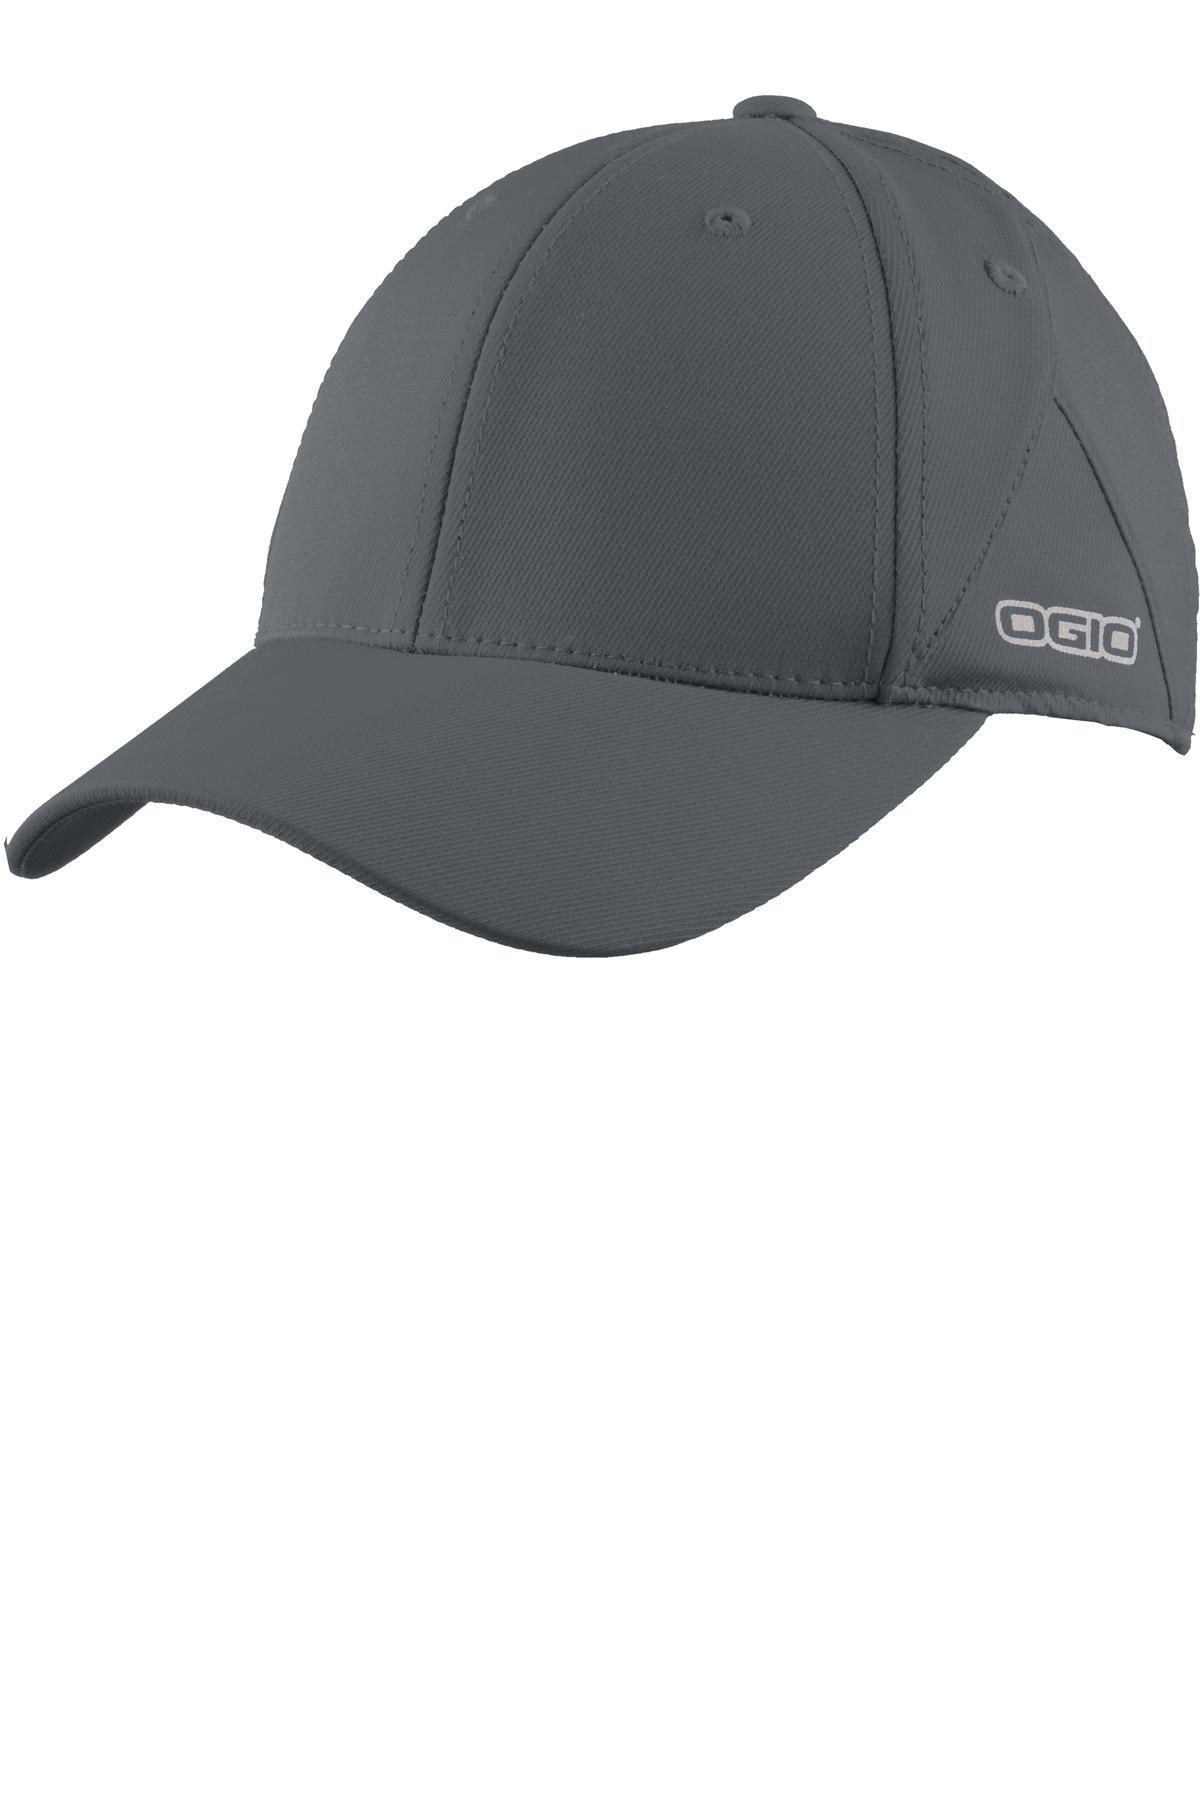 OGIO ®  ENDURANCE Apex Cap. OE650 - Gear Grey